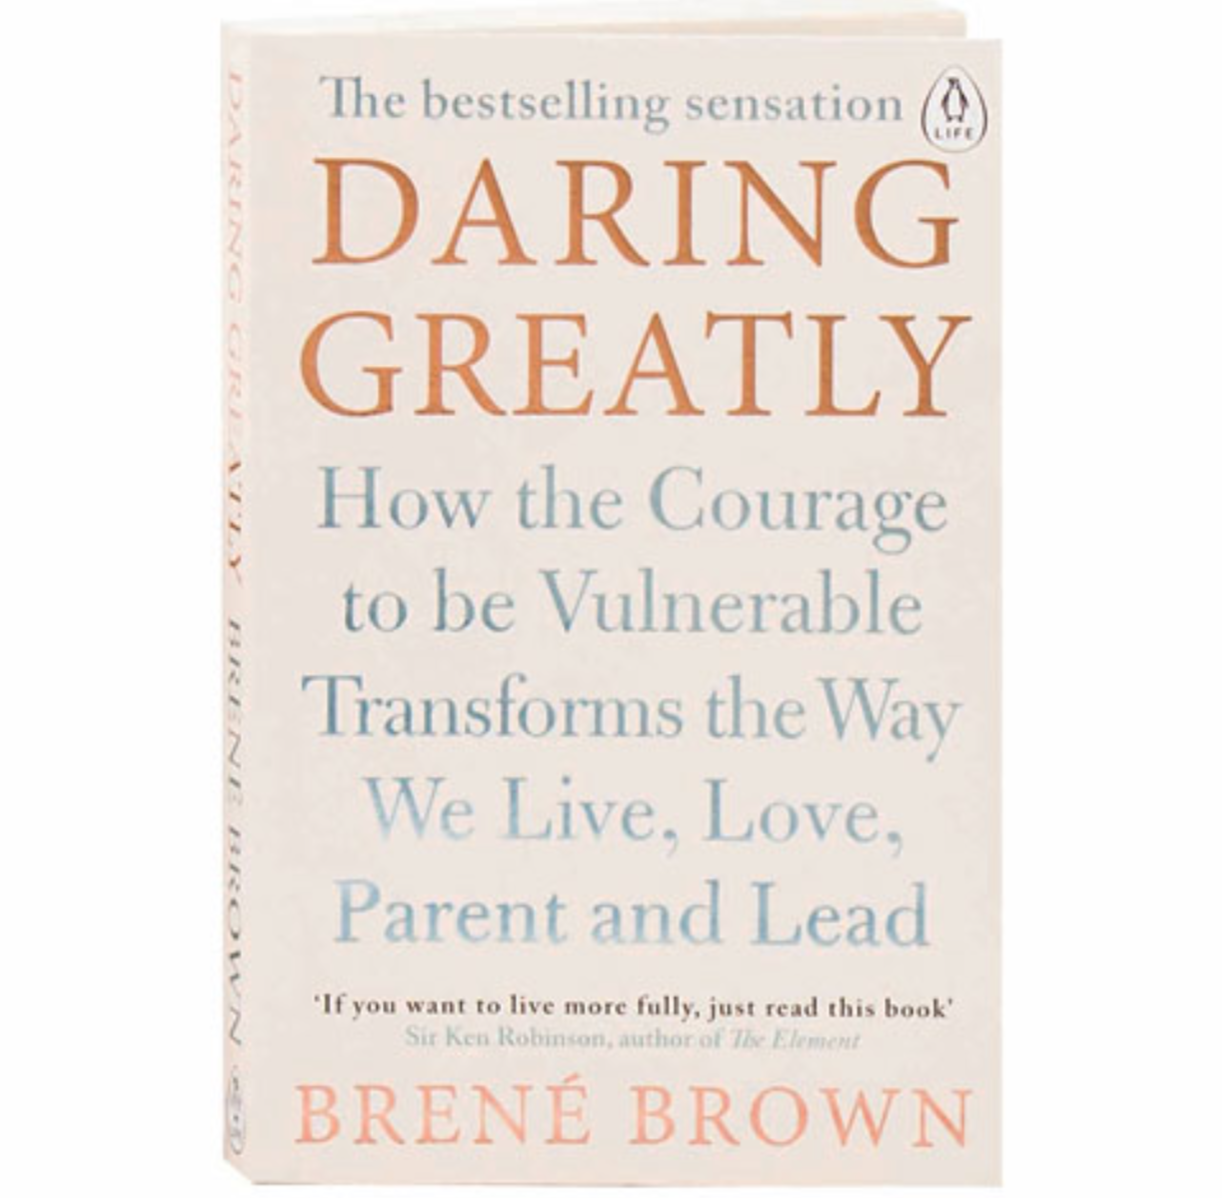 A Book to Read… - In Daring Greatly, Dr. Brown challenges everything we think we know about vulnerability. Based on twelve years of research, she argues that vulnerability is not weakness, but rather our clearest path to courage, engagement, and meaningful connection.